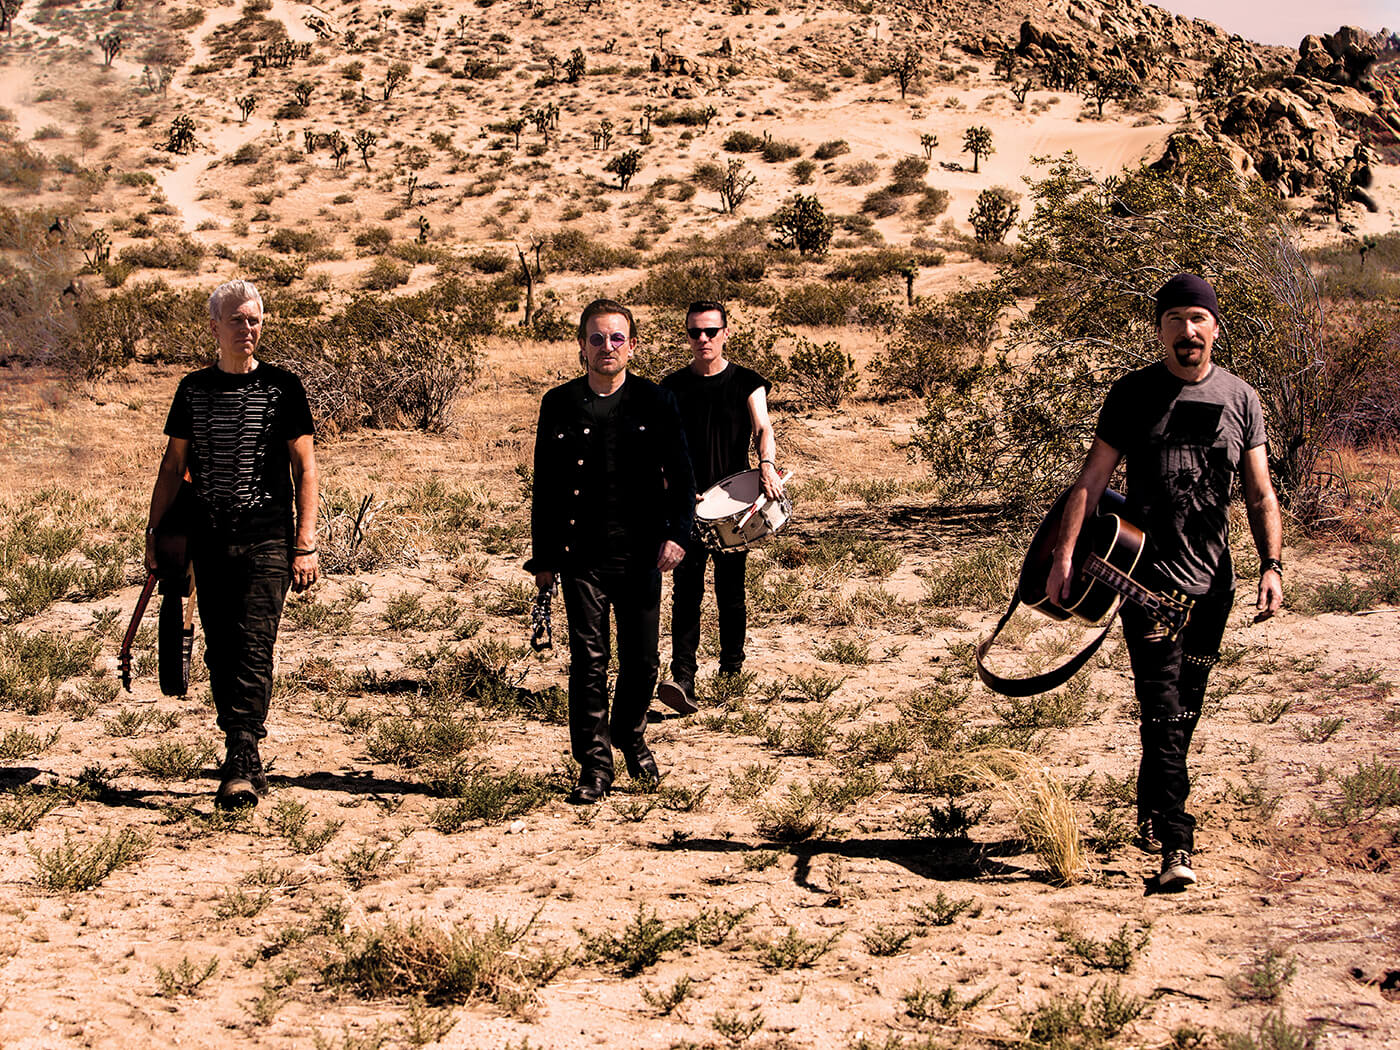 U2 posed in desert